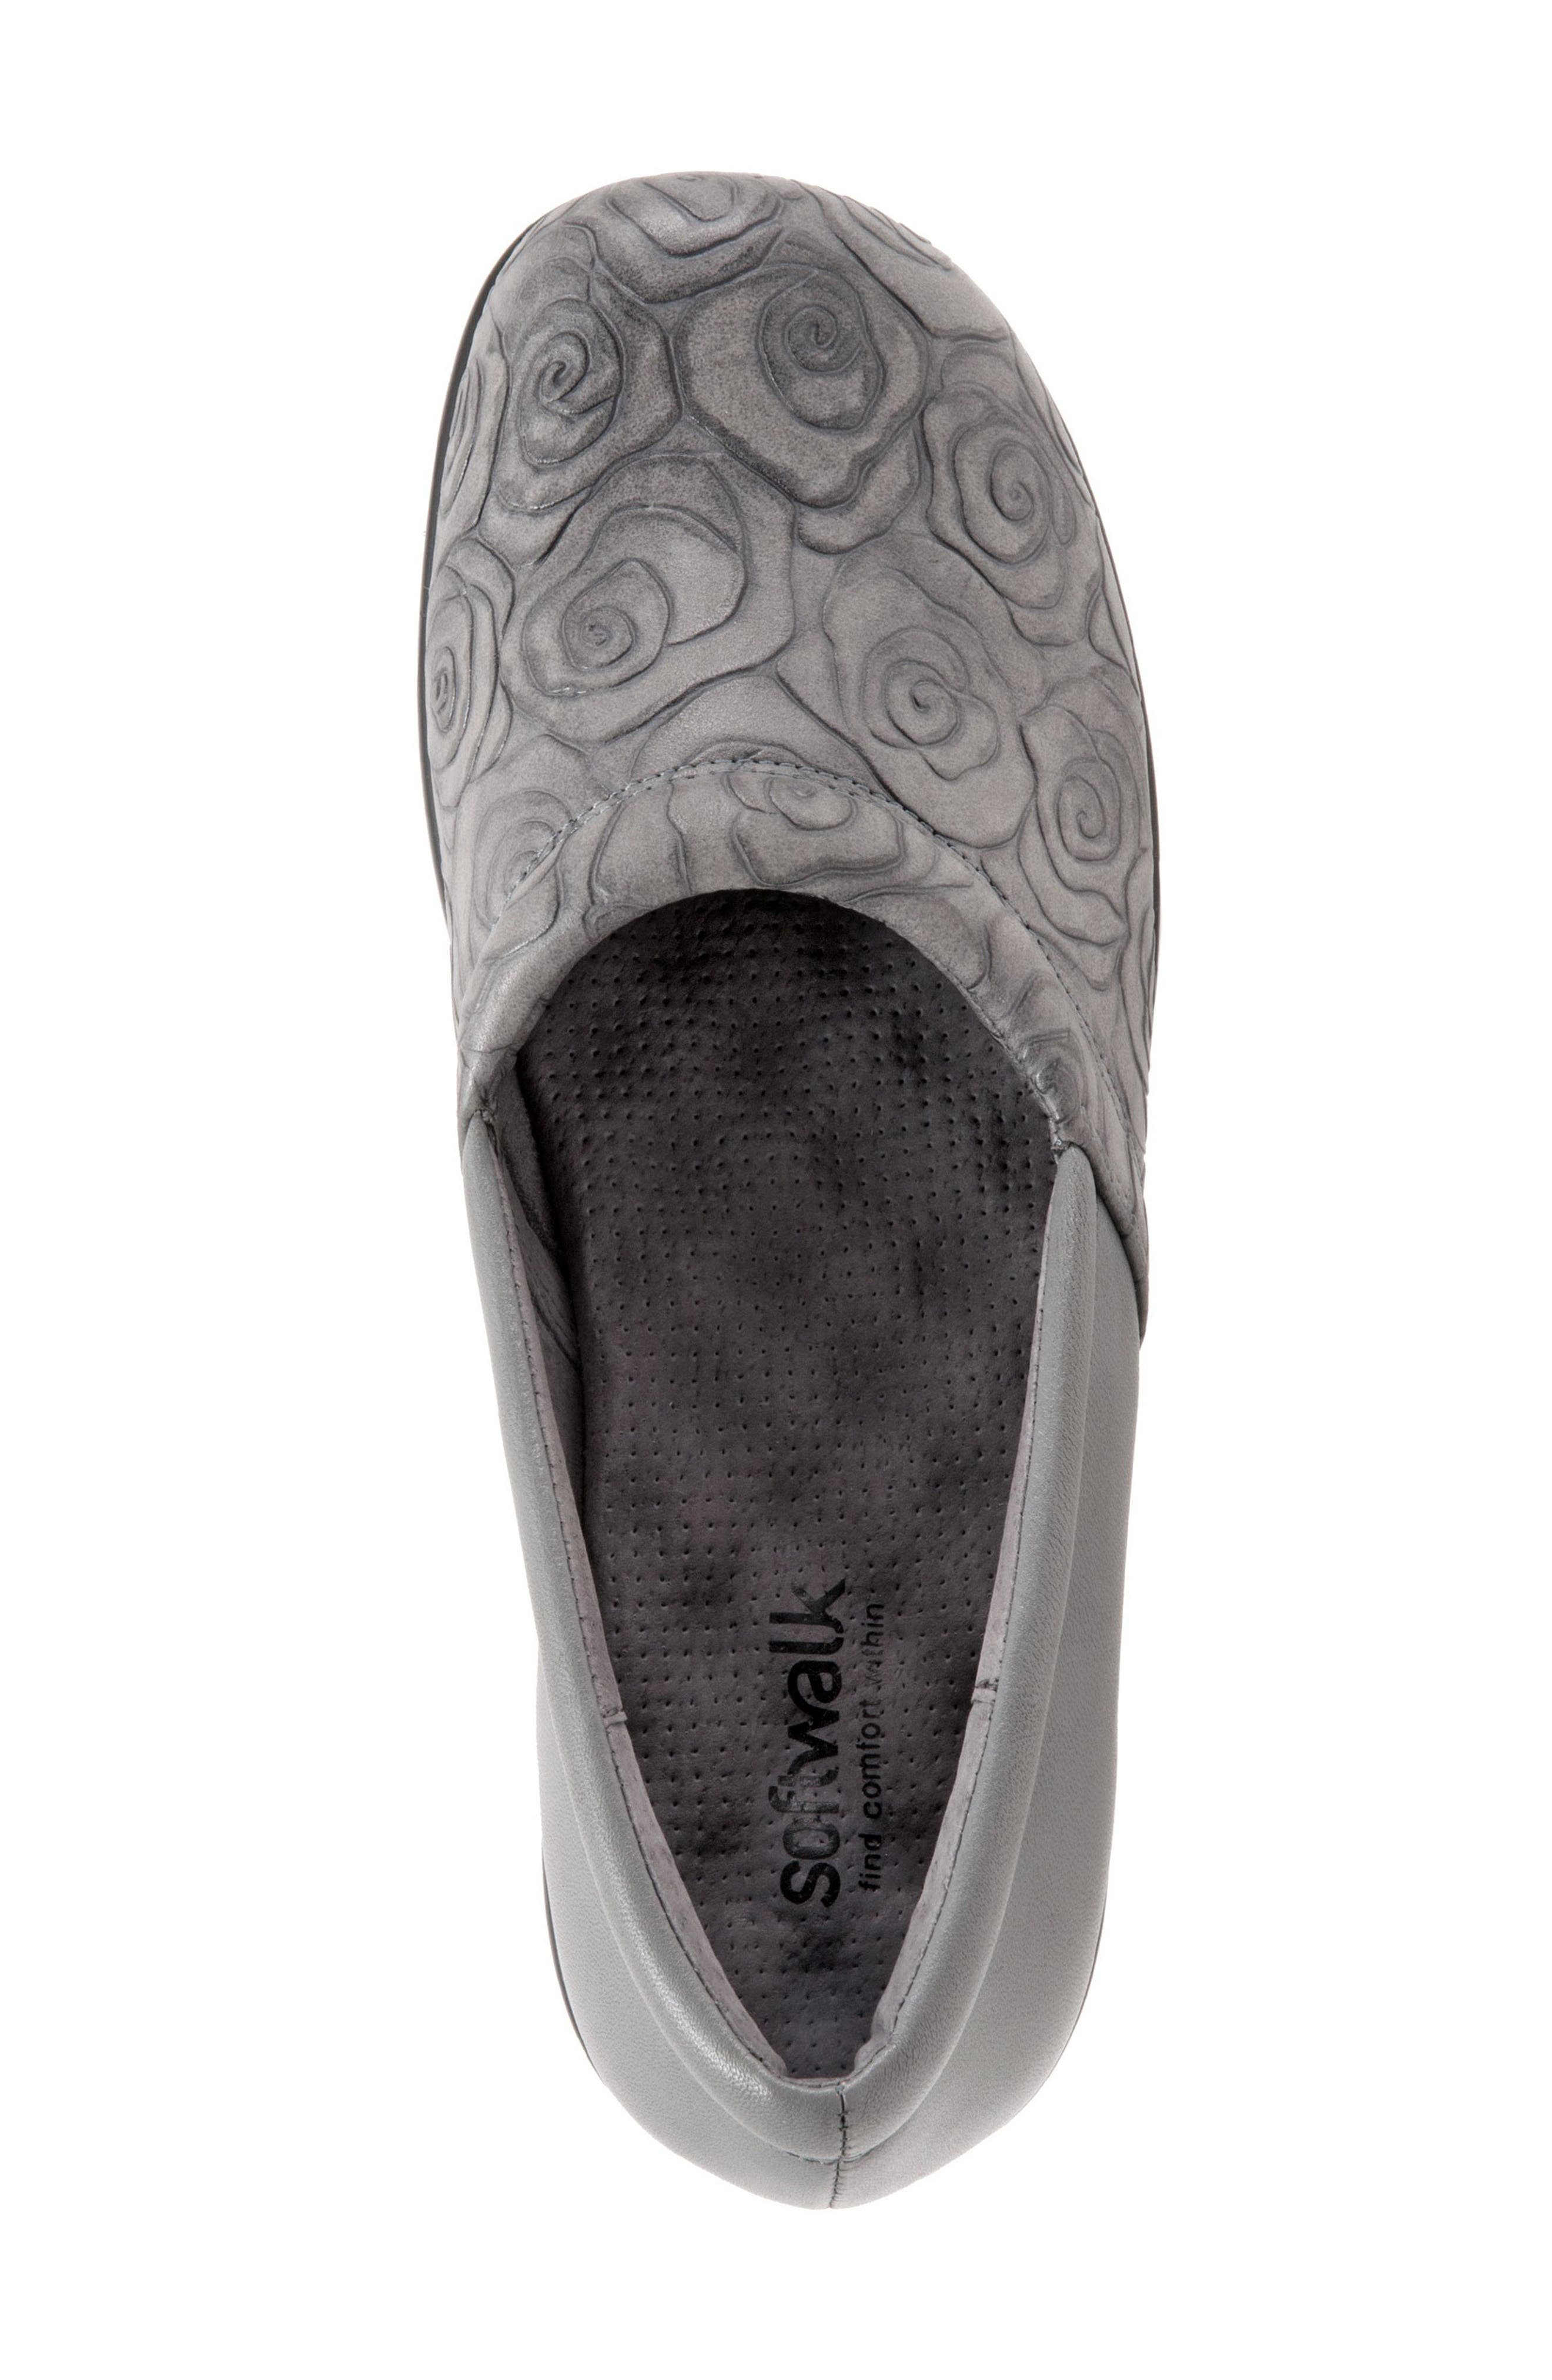 'Adora' Slip-On,                             Alternate thumbnail 5, color,                             GREY ROSE LEATHER